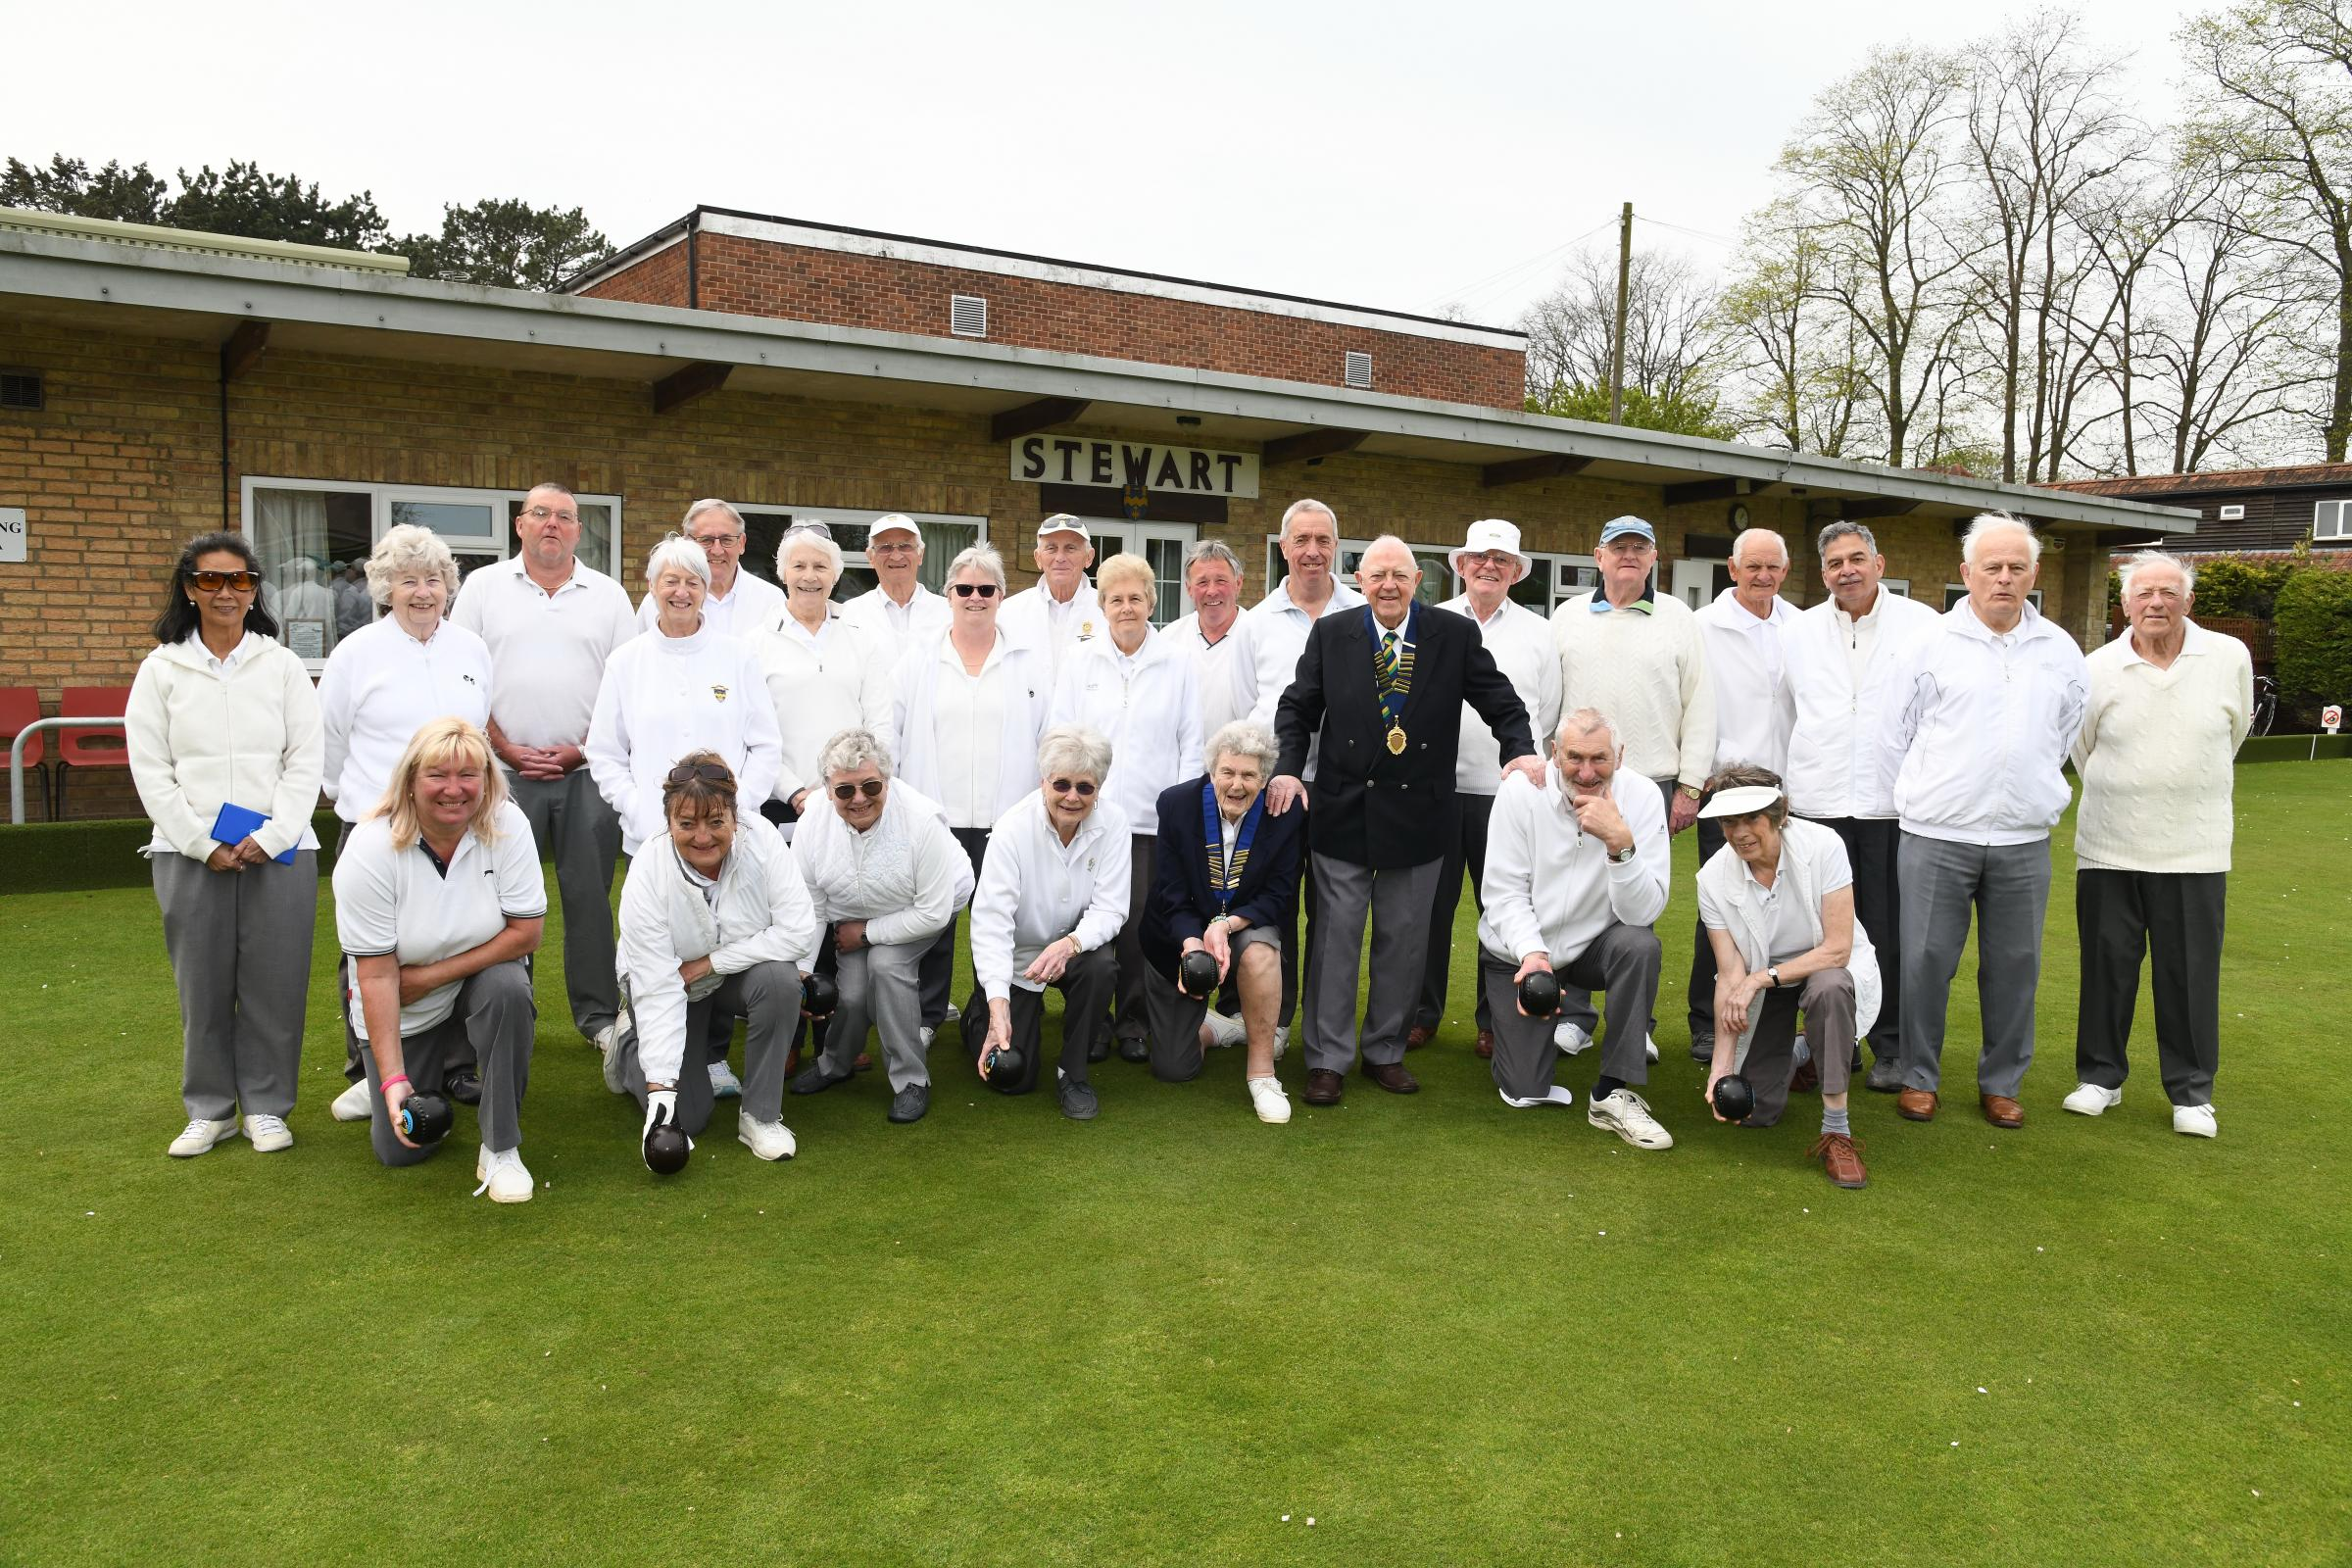 FUTURE PROOF: Members of Stewart Bowling Club, where improvements have been made to the clubhouse and green